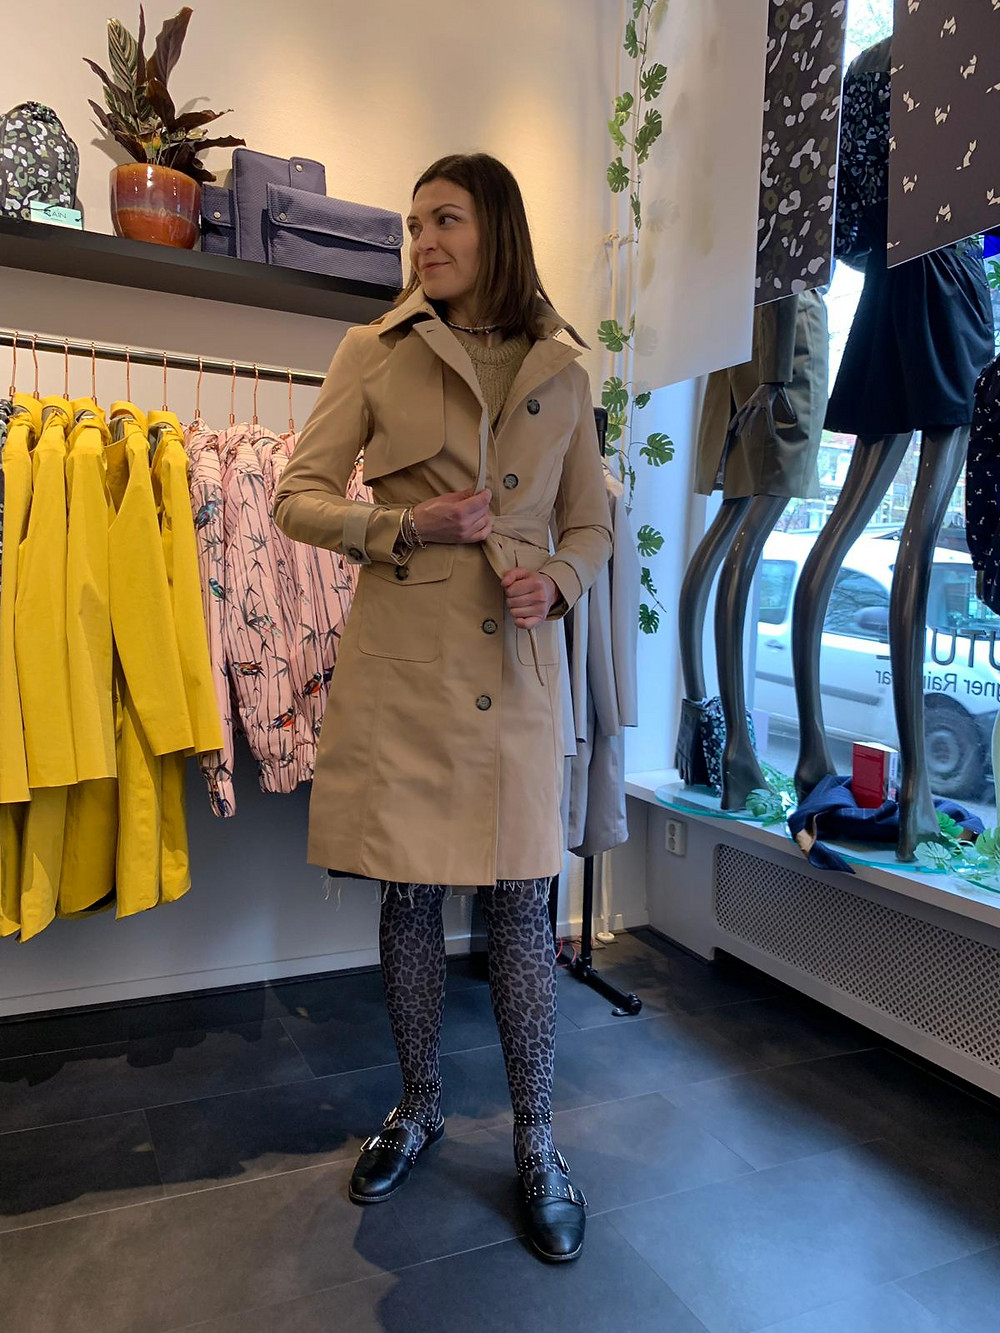 Personal Shopper , Stylist Amsterdam guide to rain coats